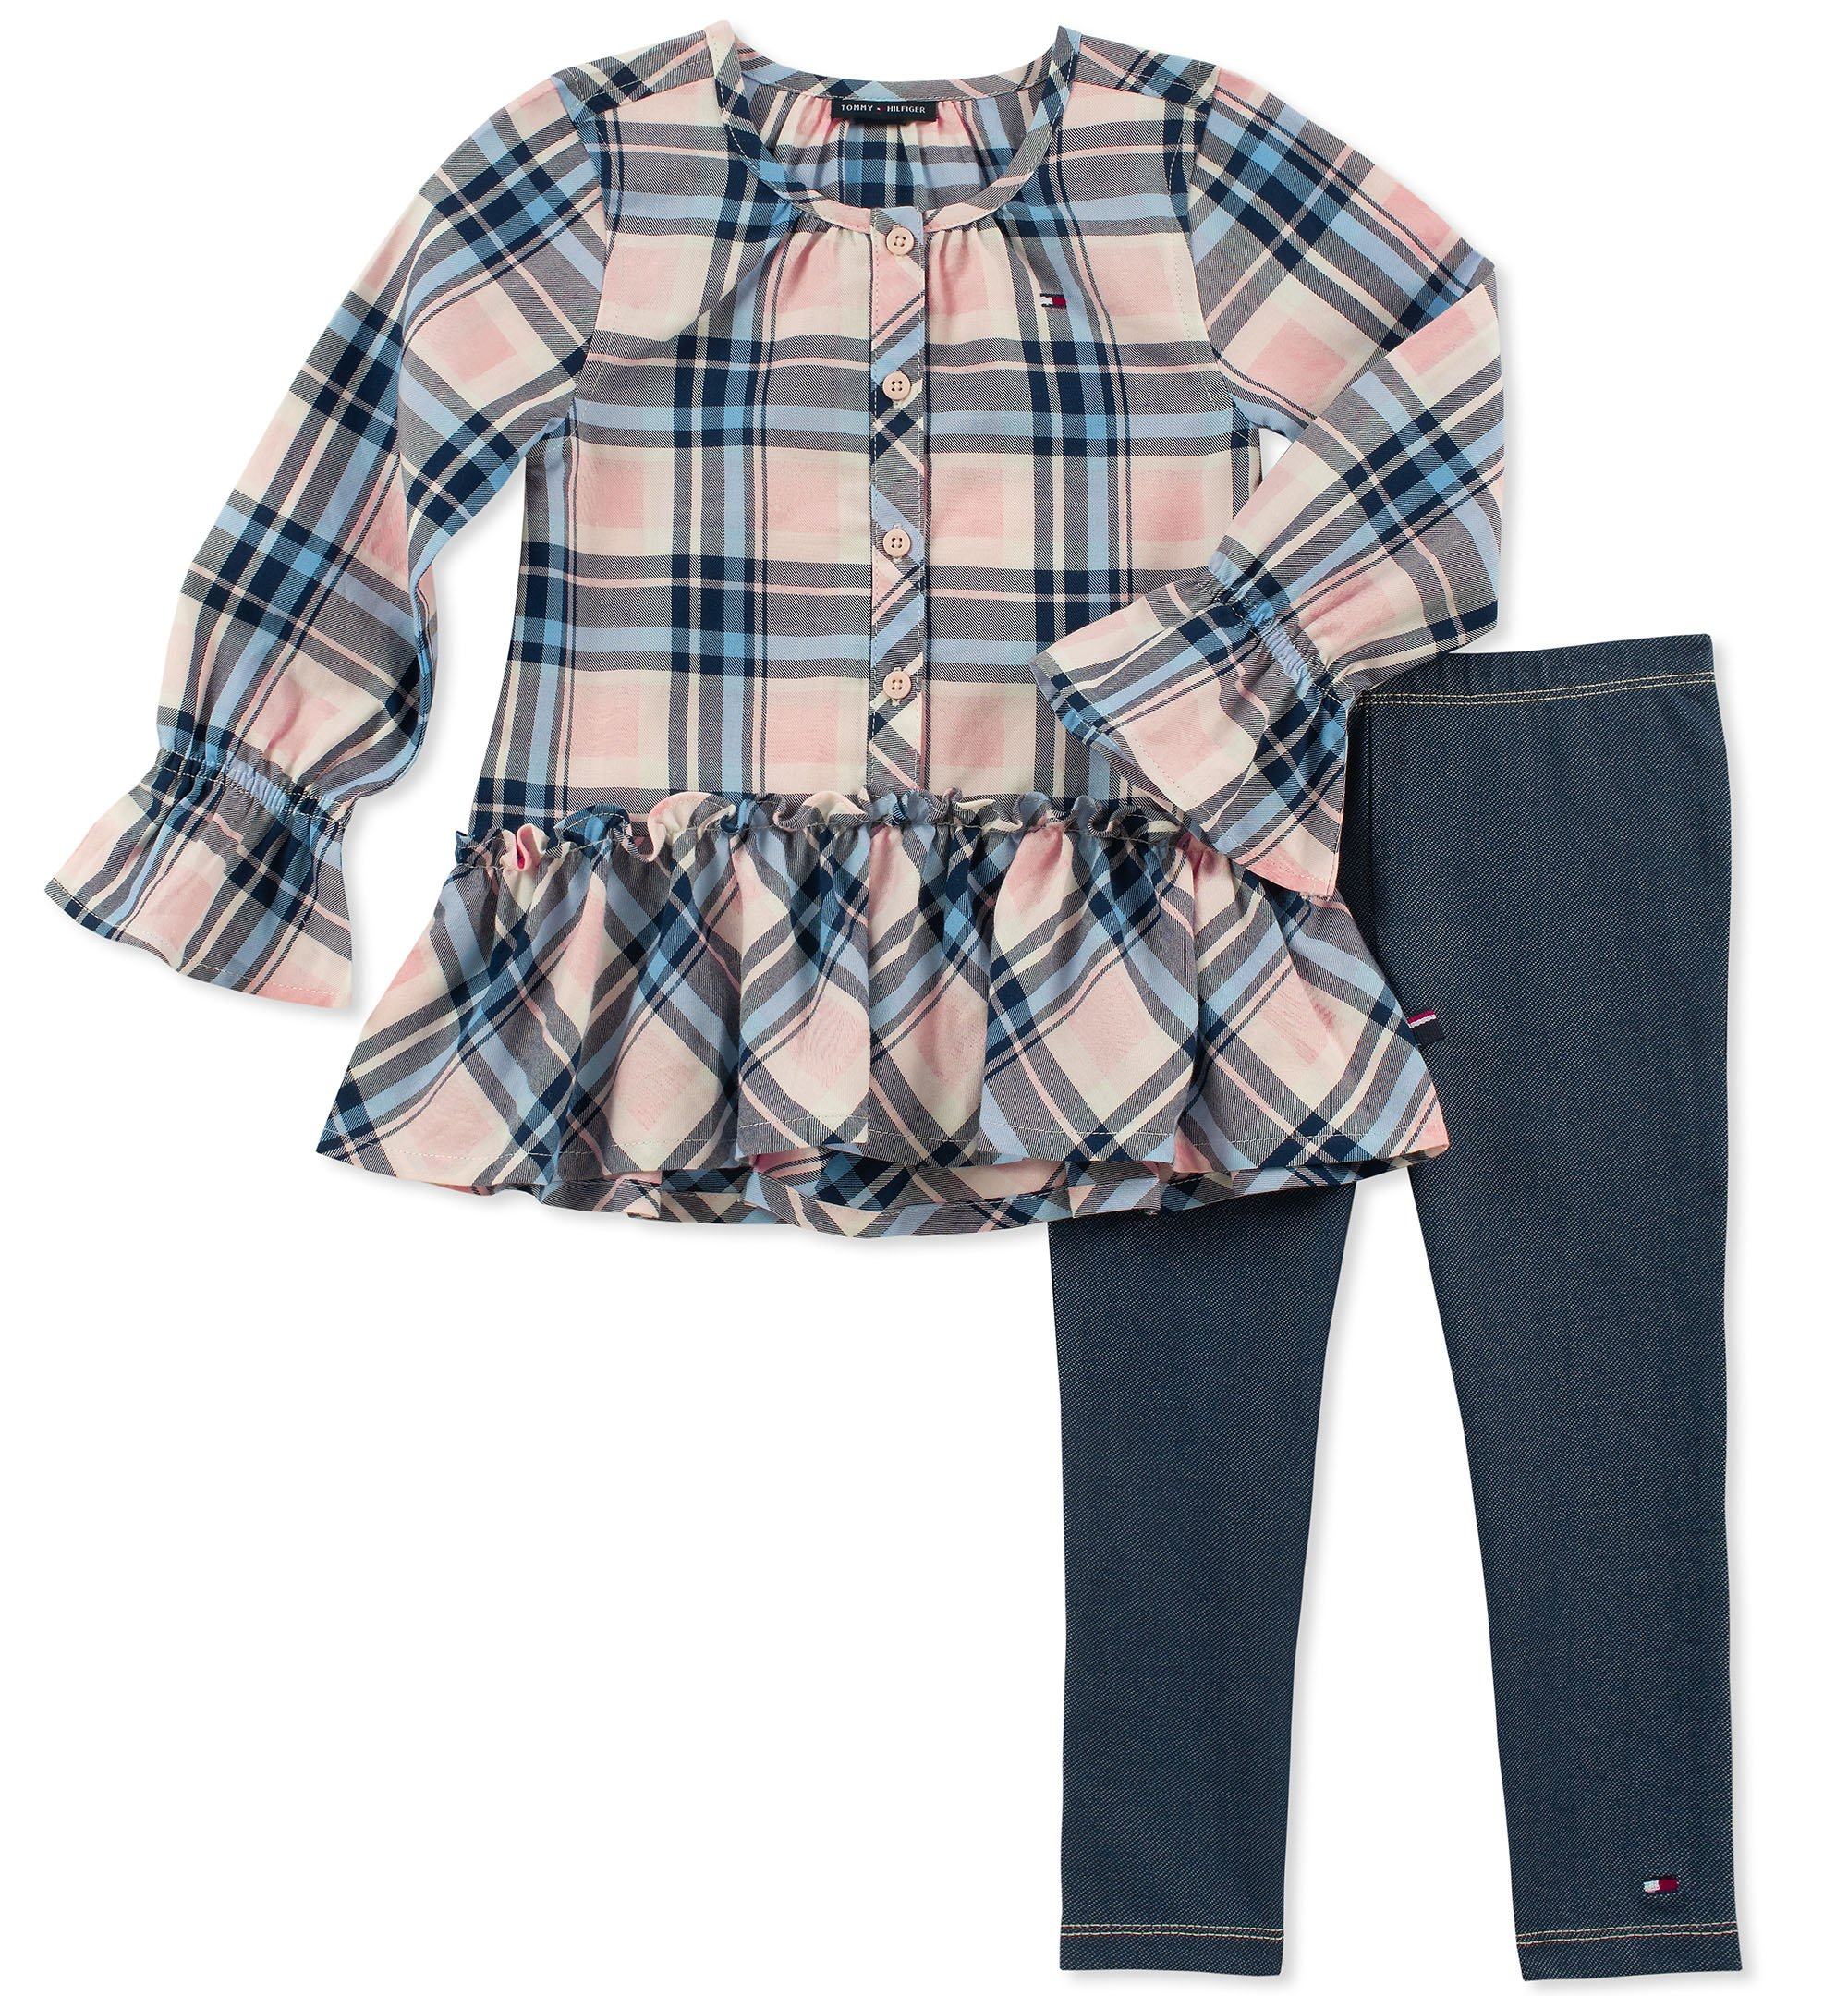 Tommy Hilfiger Girls' Toddler 2 Pieces Tunic Pants Set, Plaid Pink/Blue, 4T